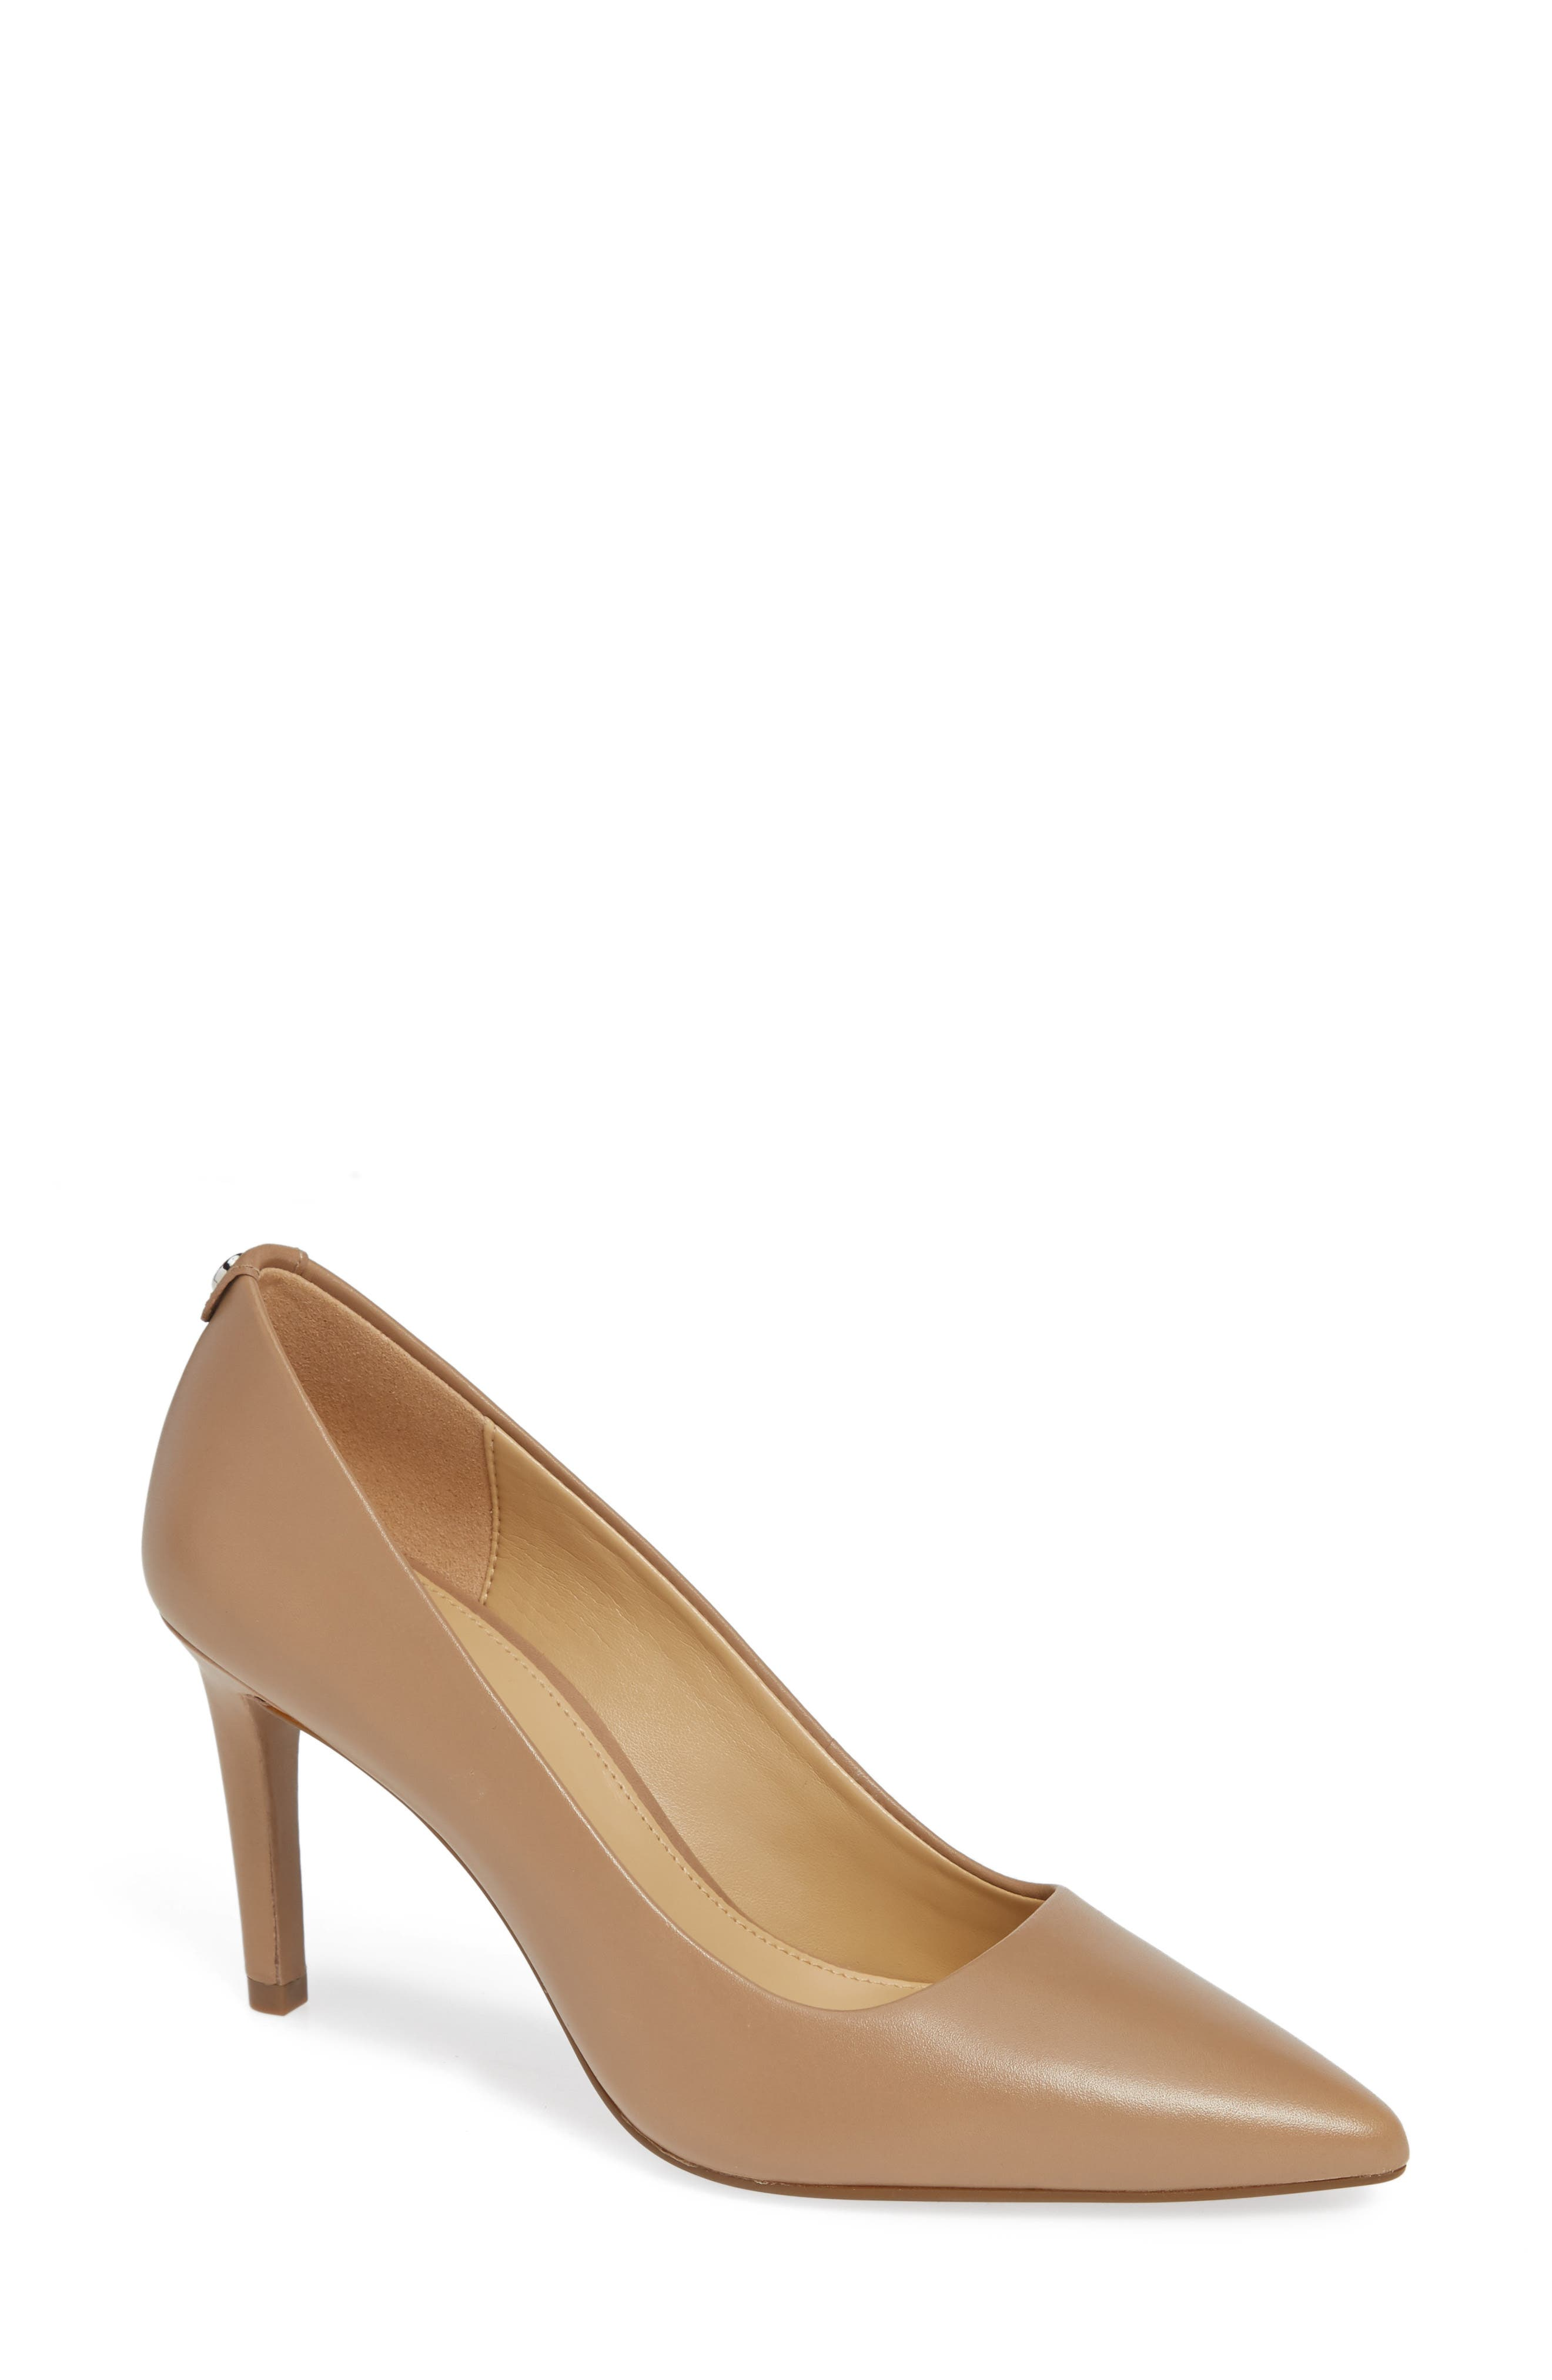 Dorothy Flex Leather Pointed Toe High-Heel Pumps in Khaki